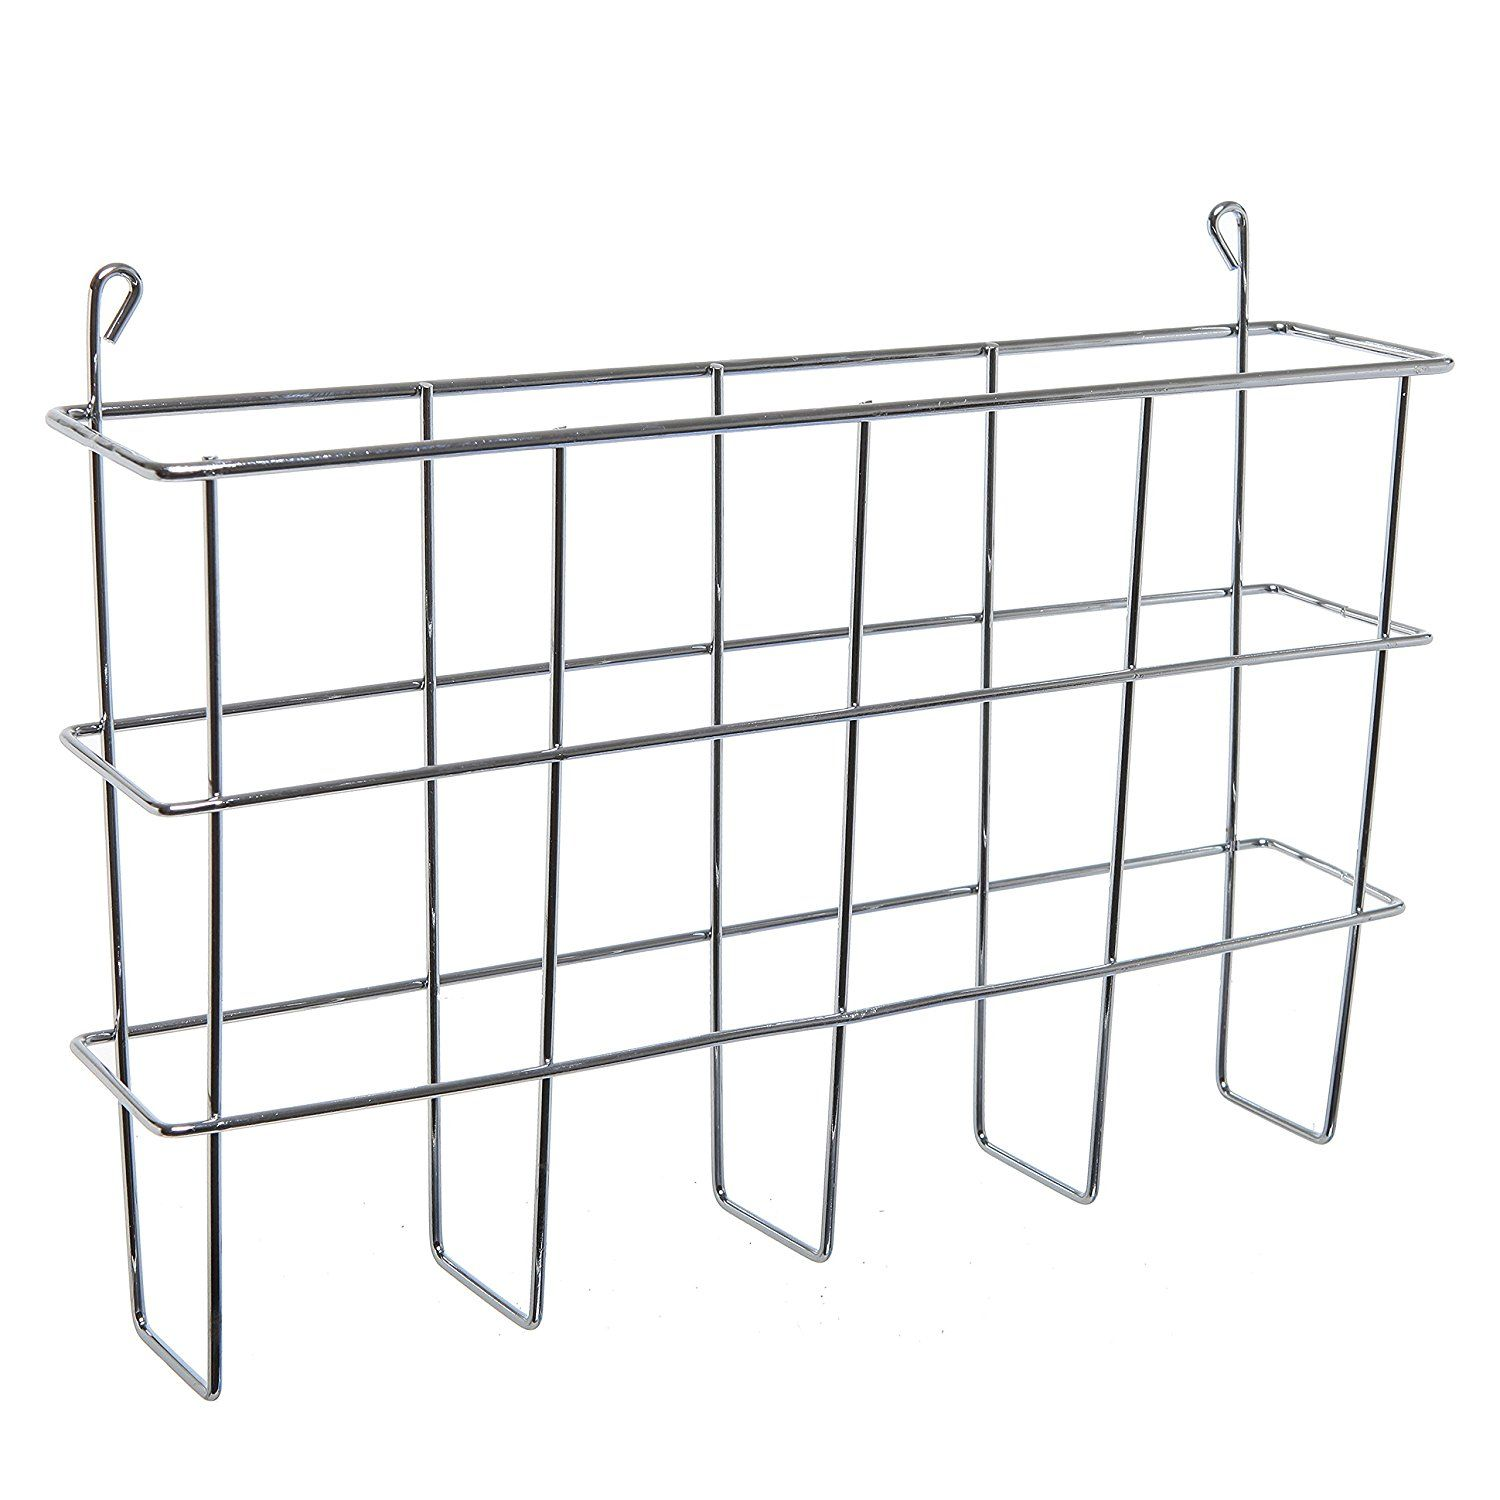 newspaper rack for office. Amazon.com : Modern Wall Mounted Silver Metal Magazine Storage Basket / Hanging Office File Newspaper Rack For T